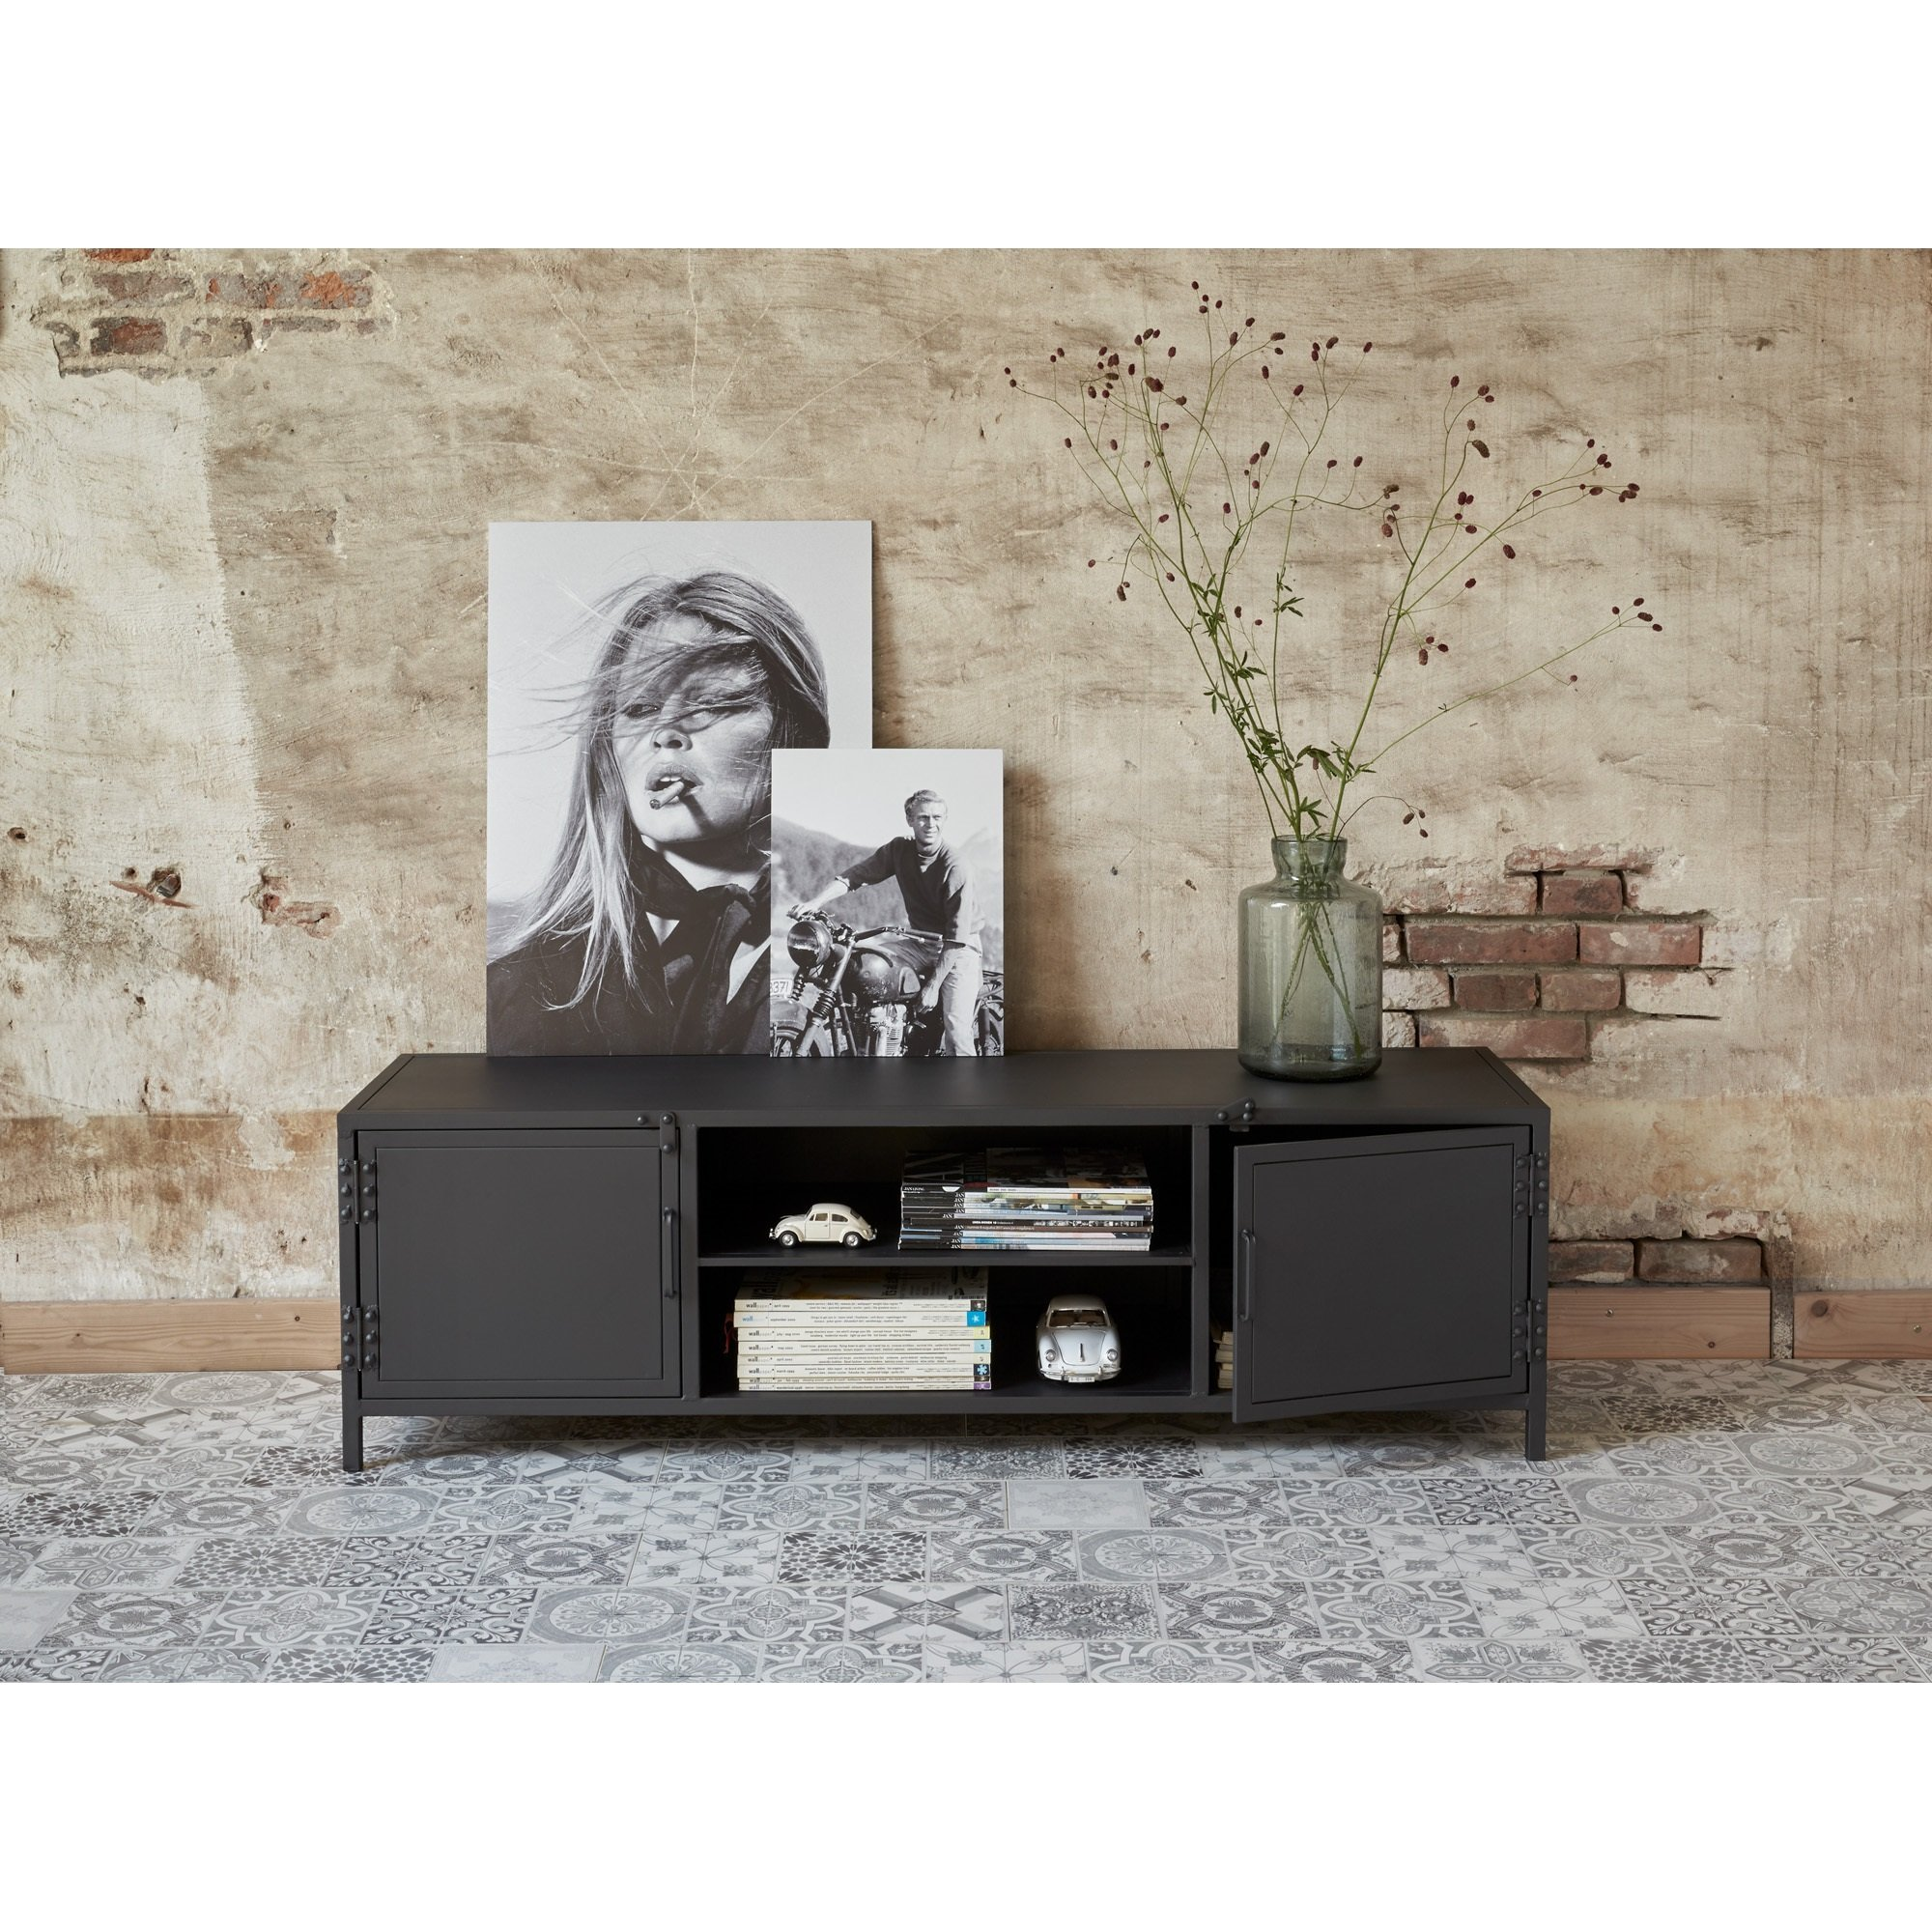 Meuble Vynil Metalen Tv Meubel Castello Zwart Kwantum